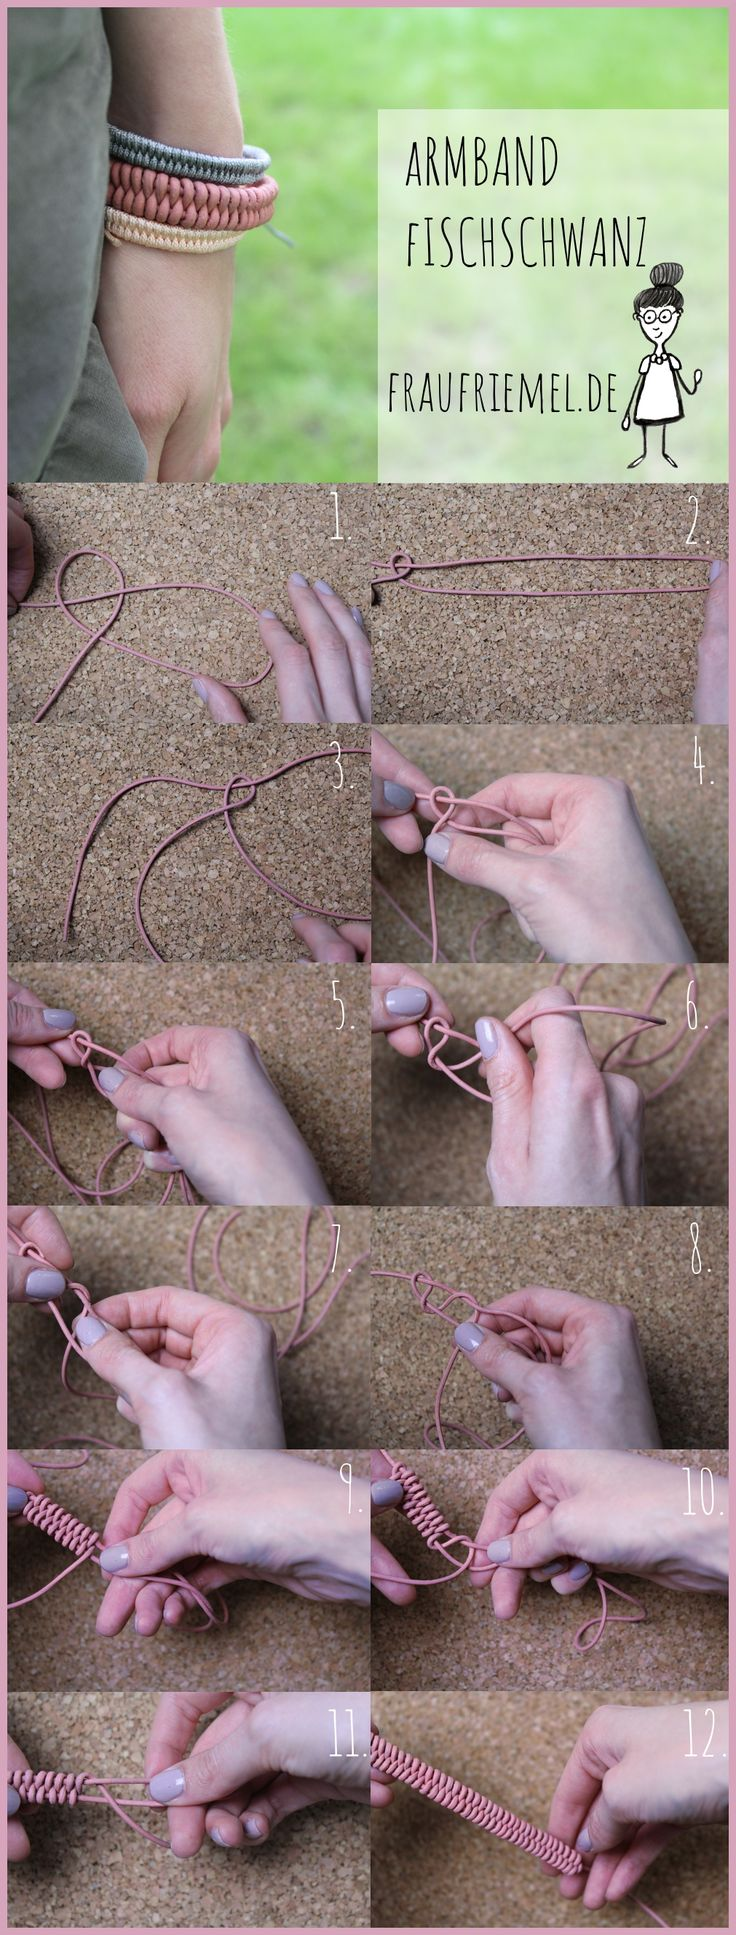 Bracelets tie with simple instructions